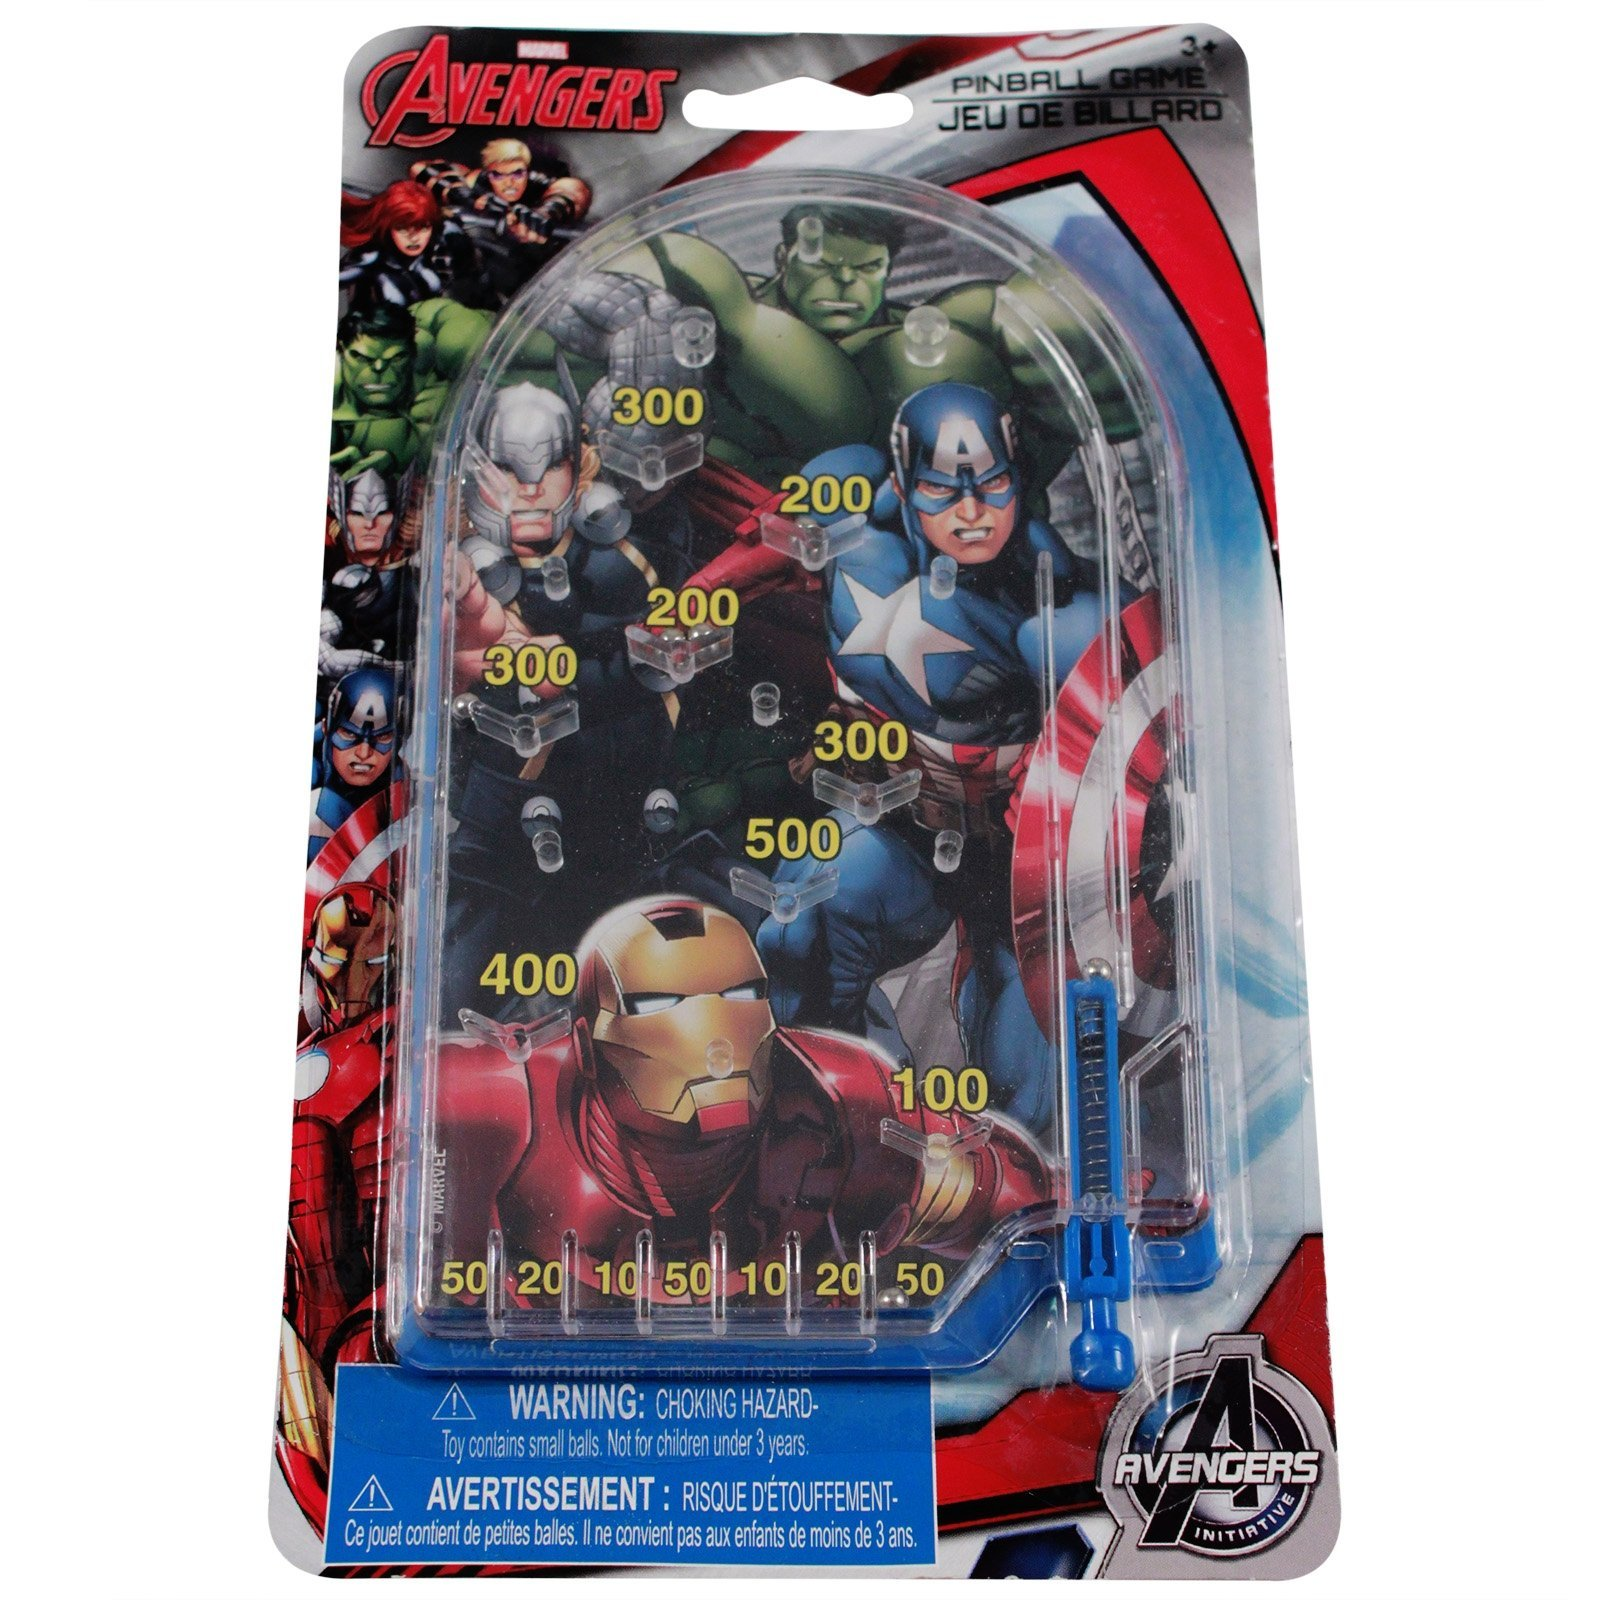 Marvel Avengers Handheld Pinball Game